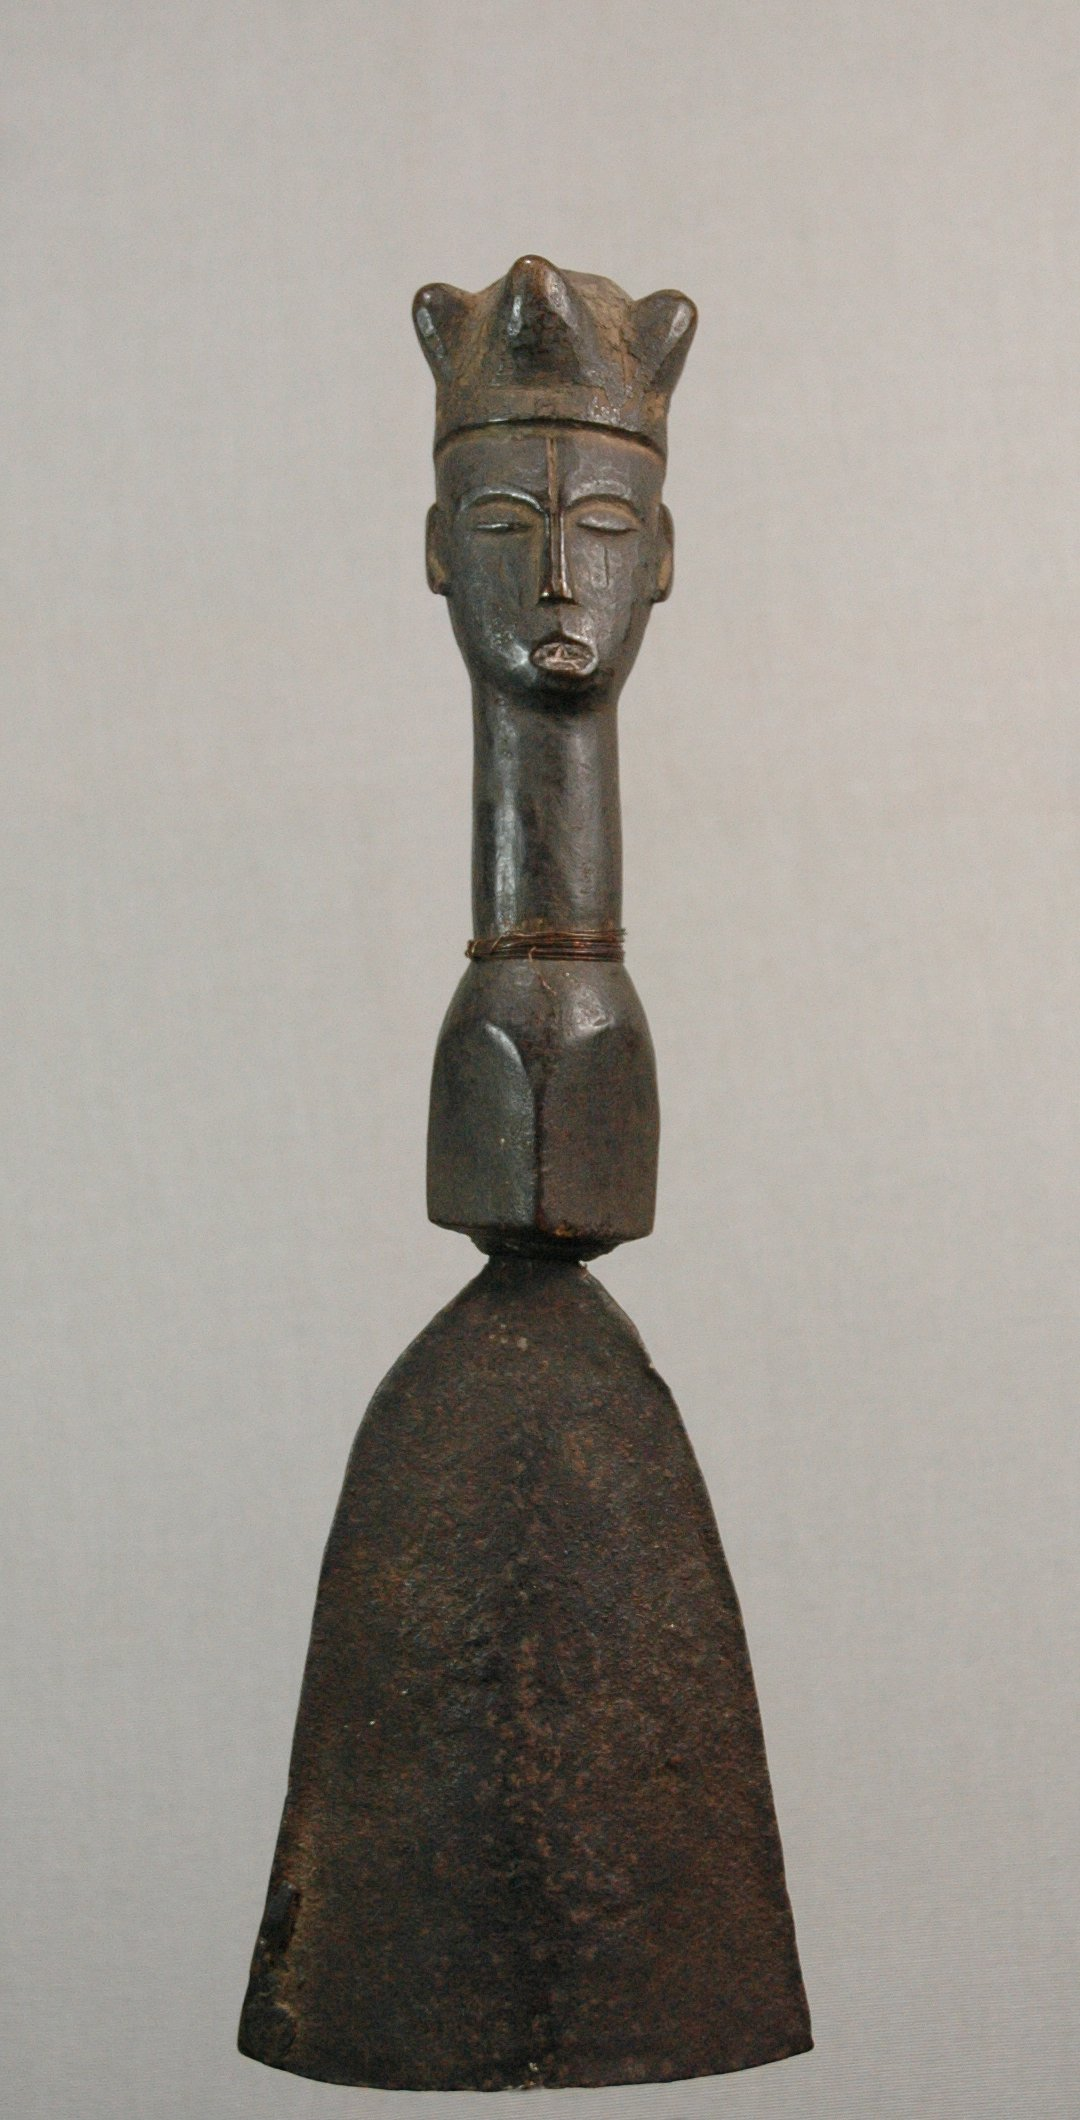 Igbo gong with a head